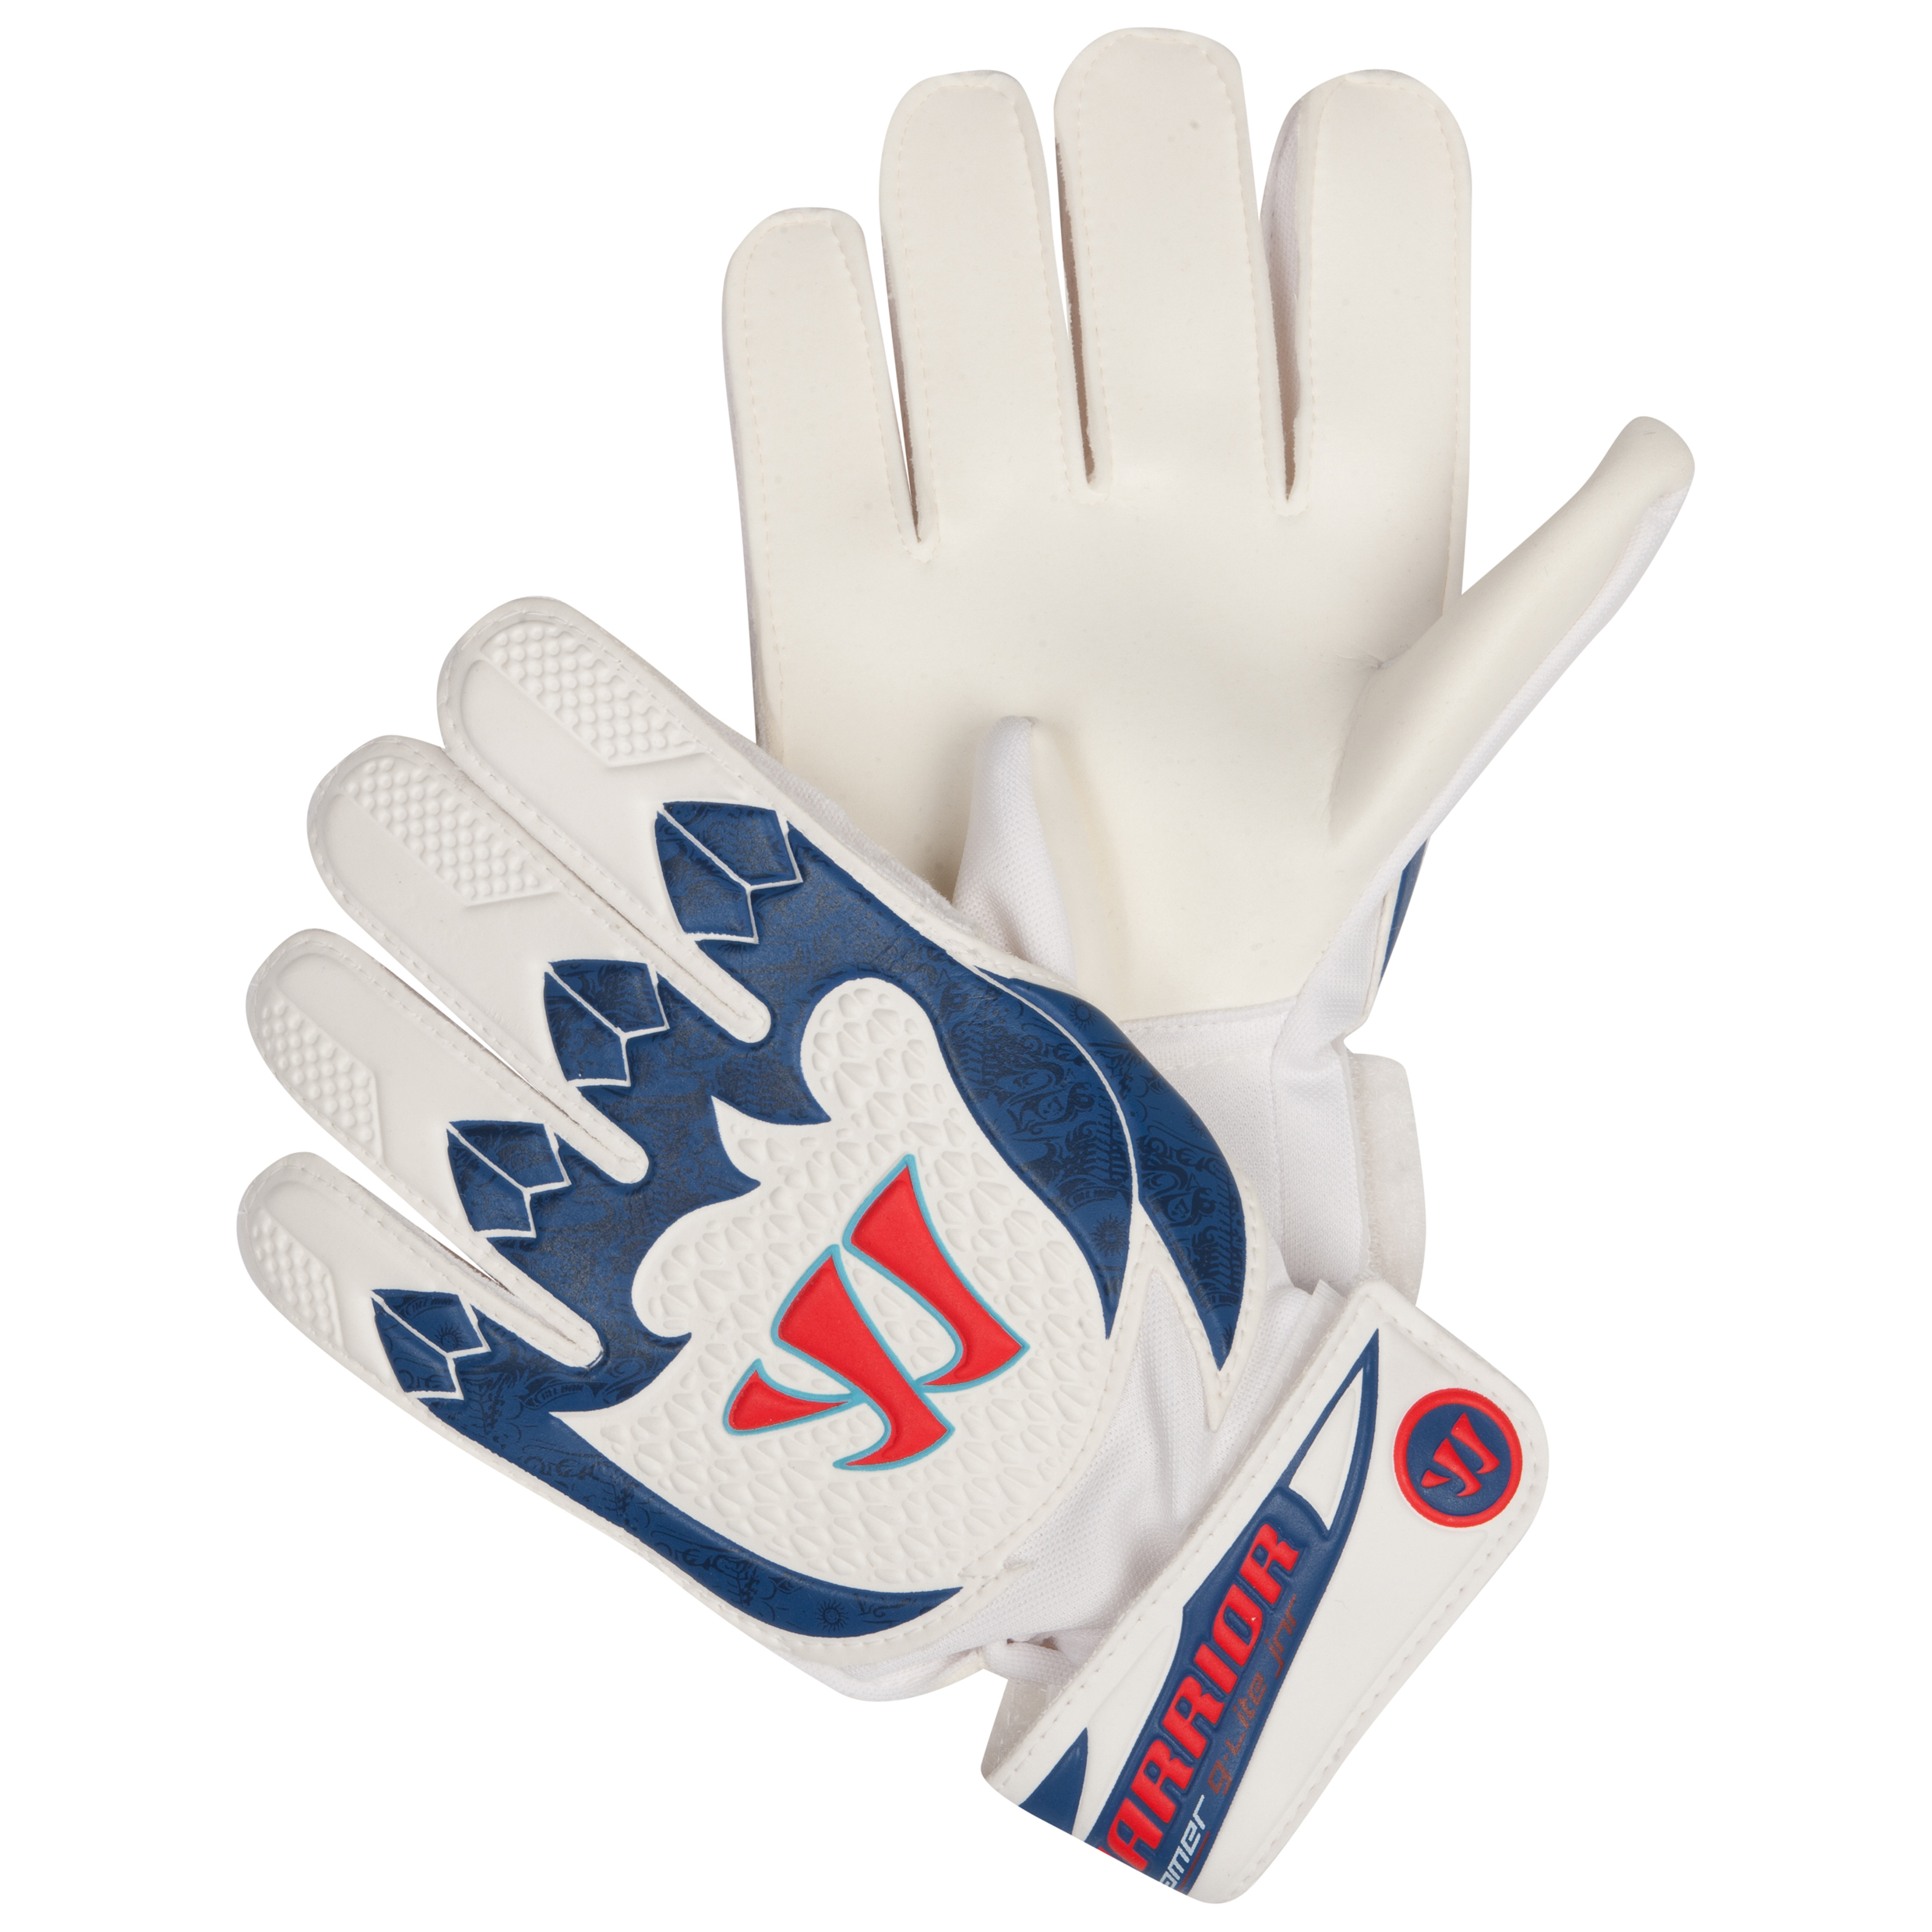 Warrior Sports Skreamer G-Lite Junior Goalkeeper Gloves-Wht/Navy/Red White